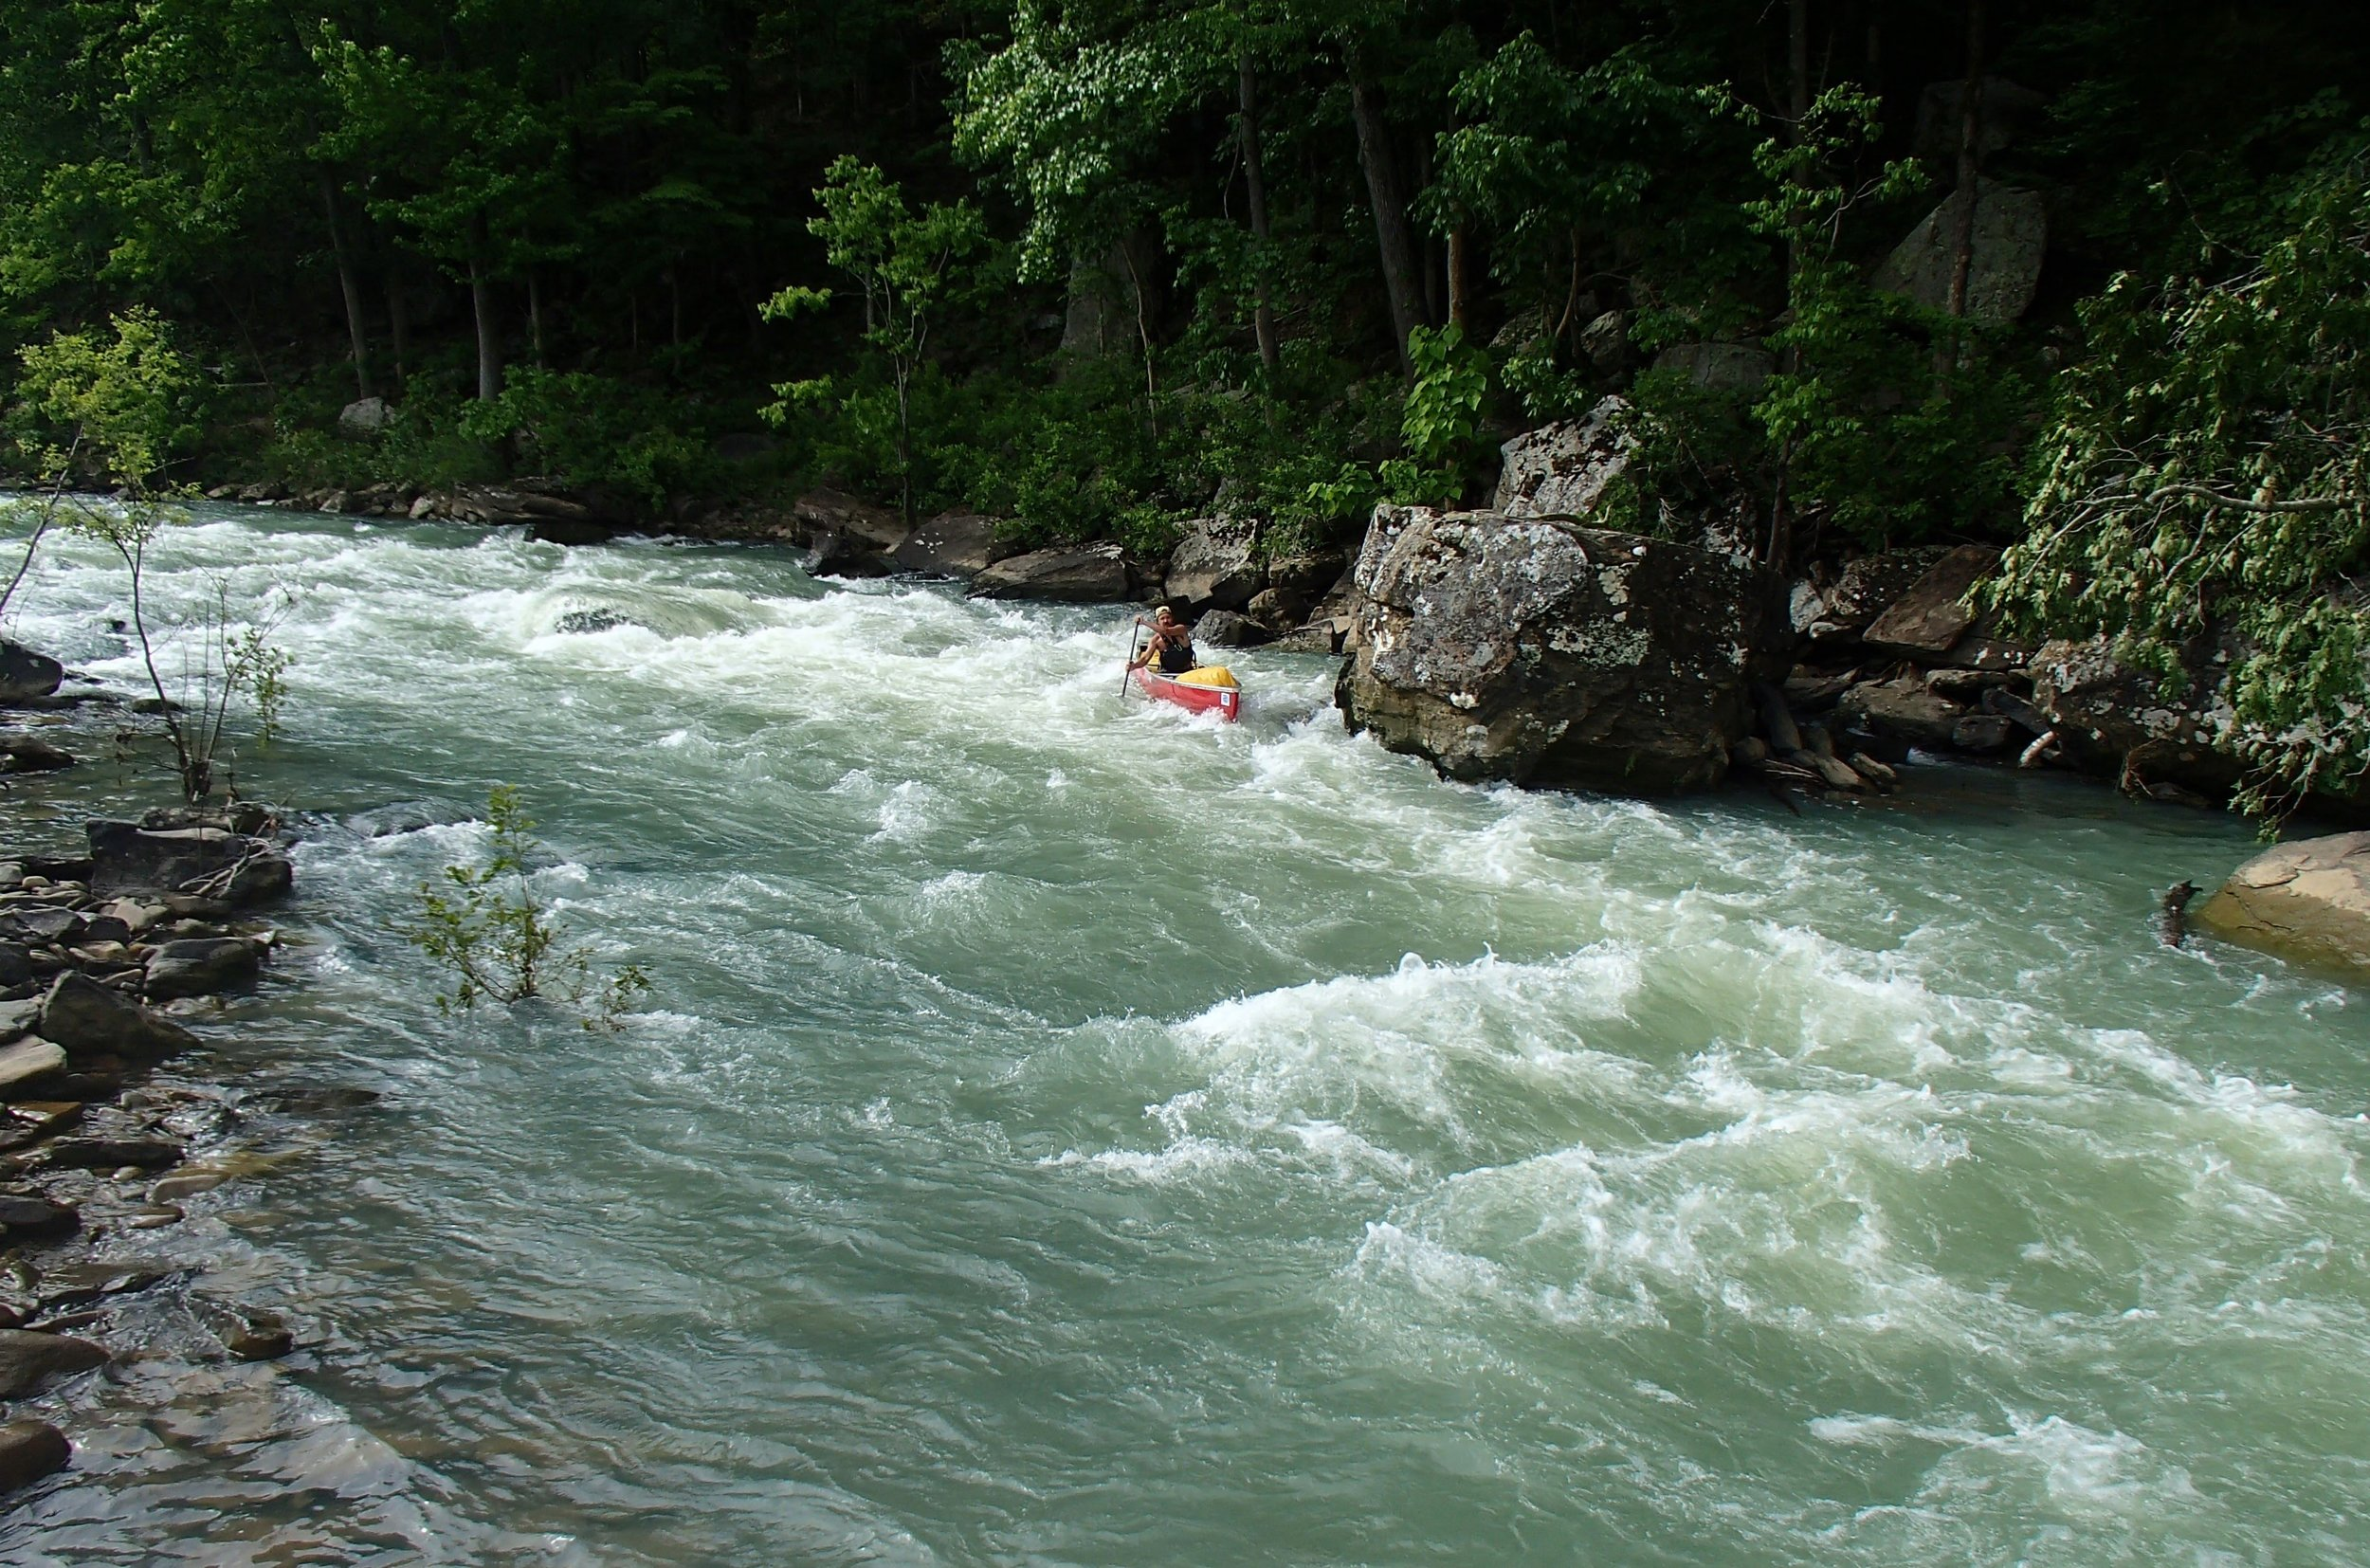 Big Piney, found in the heart of the Ozarks near Russellville, is only 67 miles long, but it offers some of the nicest floating in the state—when the water is at the correct level.